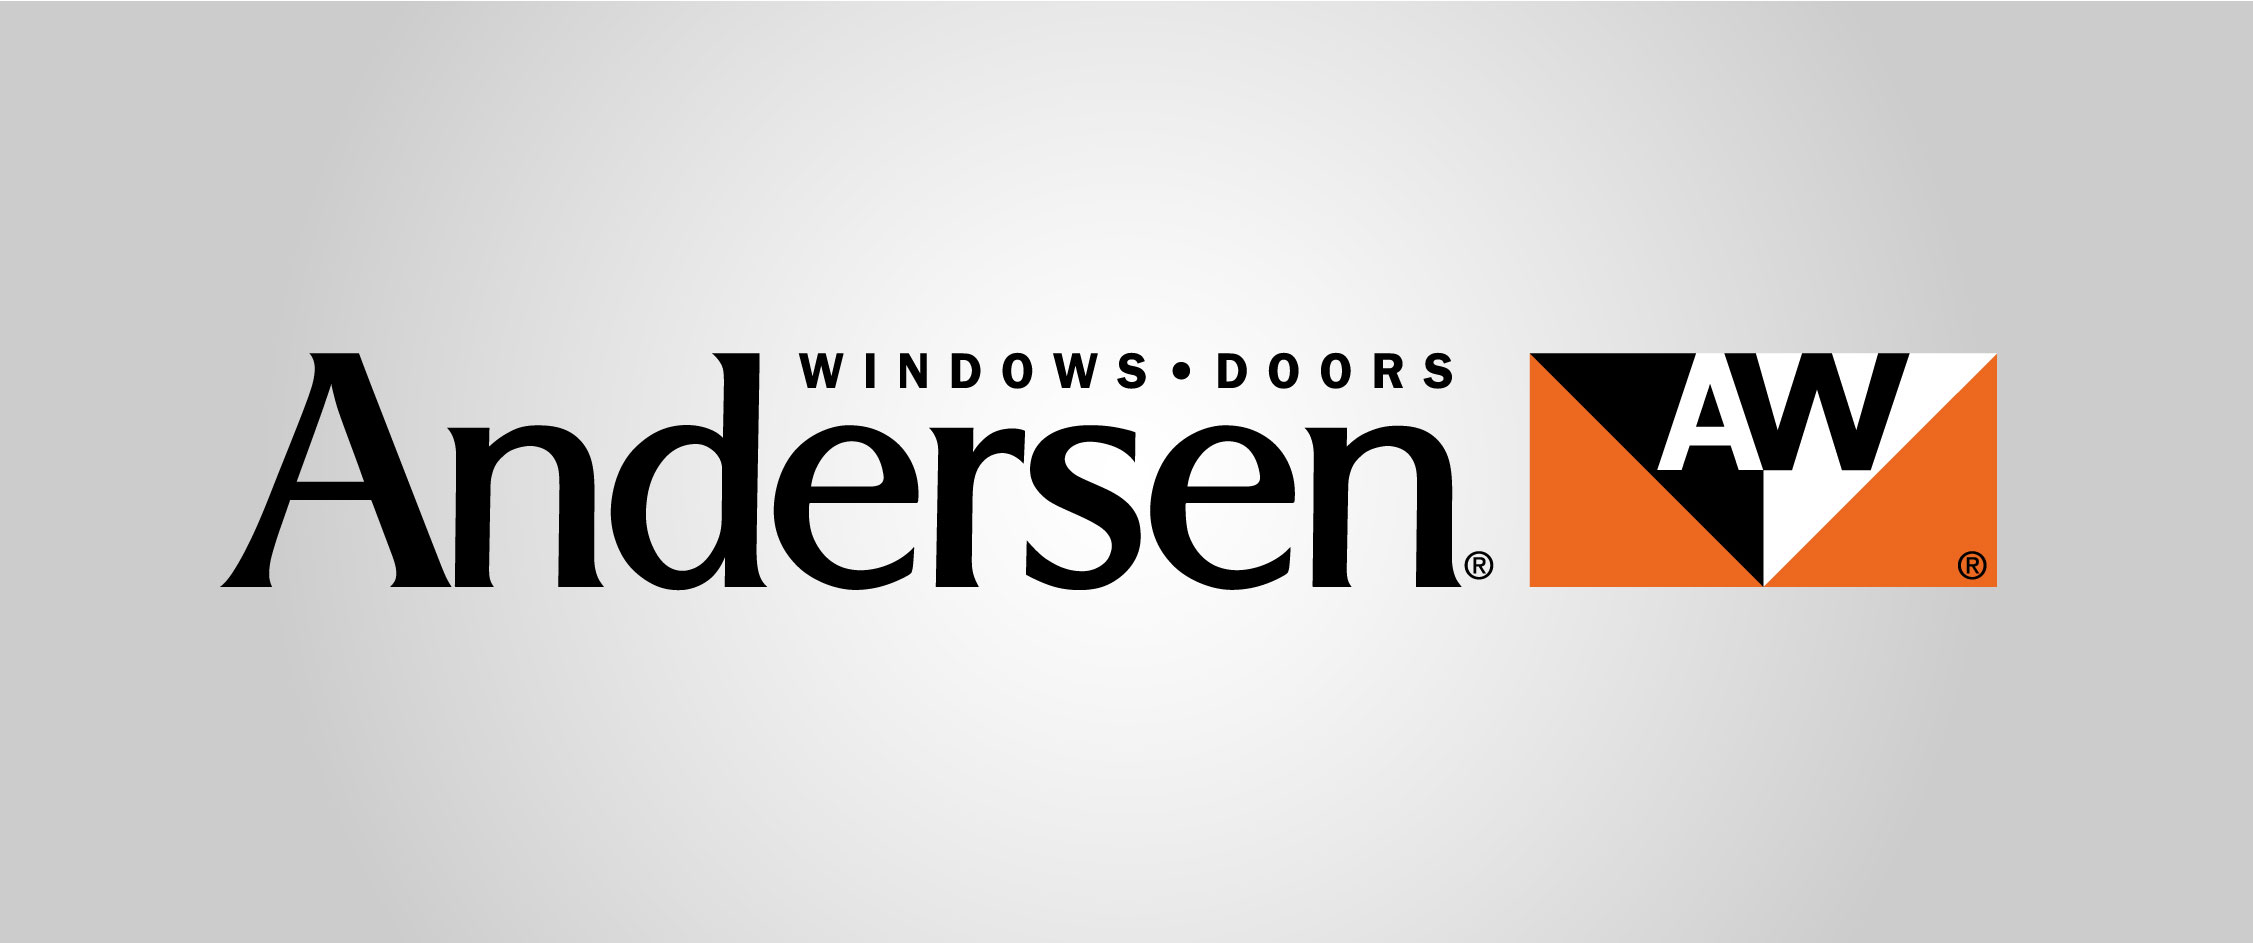 andersen-Logo-for-Website.jpg